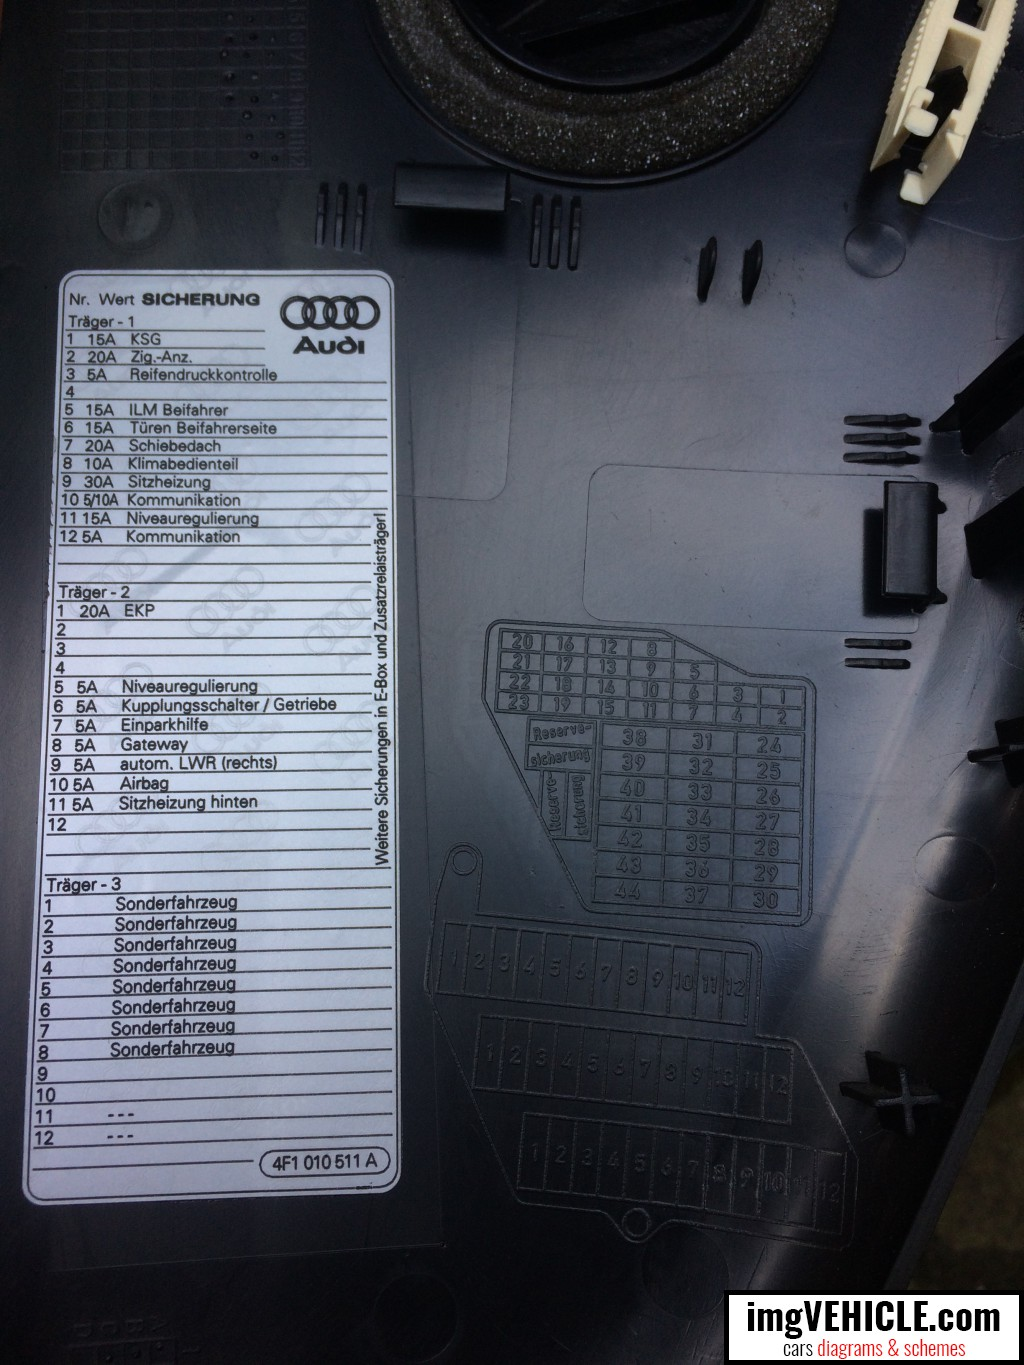 audi a6 c6 fuse diagram wiring diagram advance fuse box audi a6 c6 a6 c6 fuse [ 1024 x 1365 Pixel ]